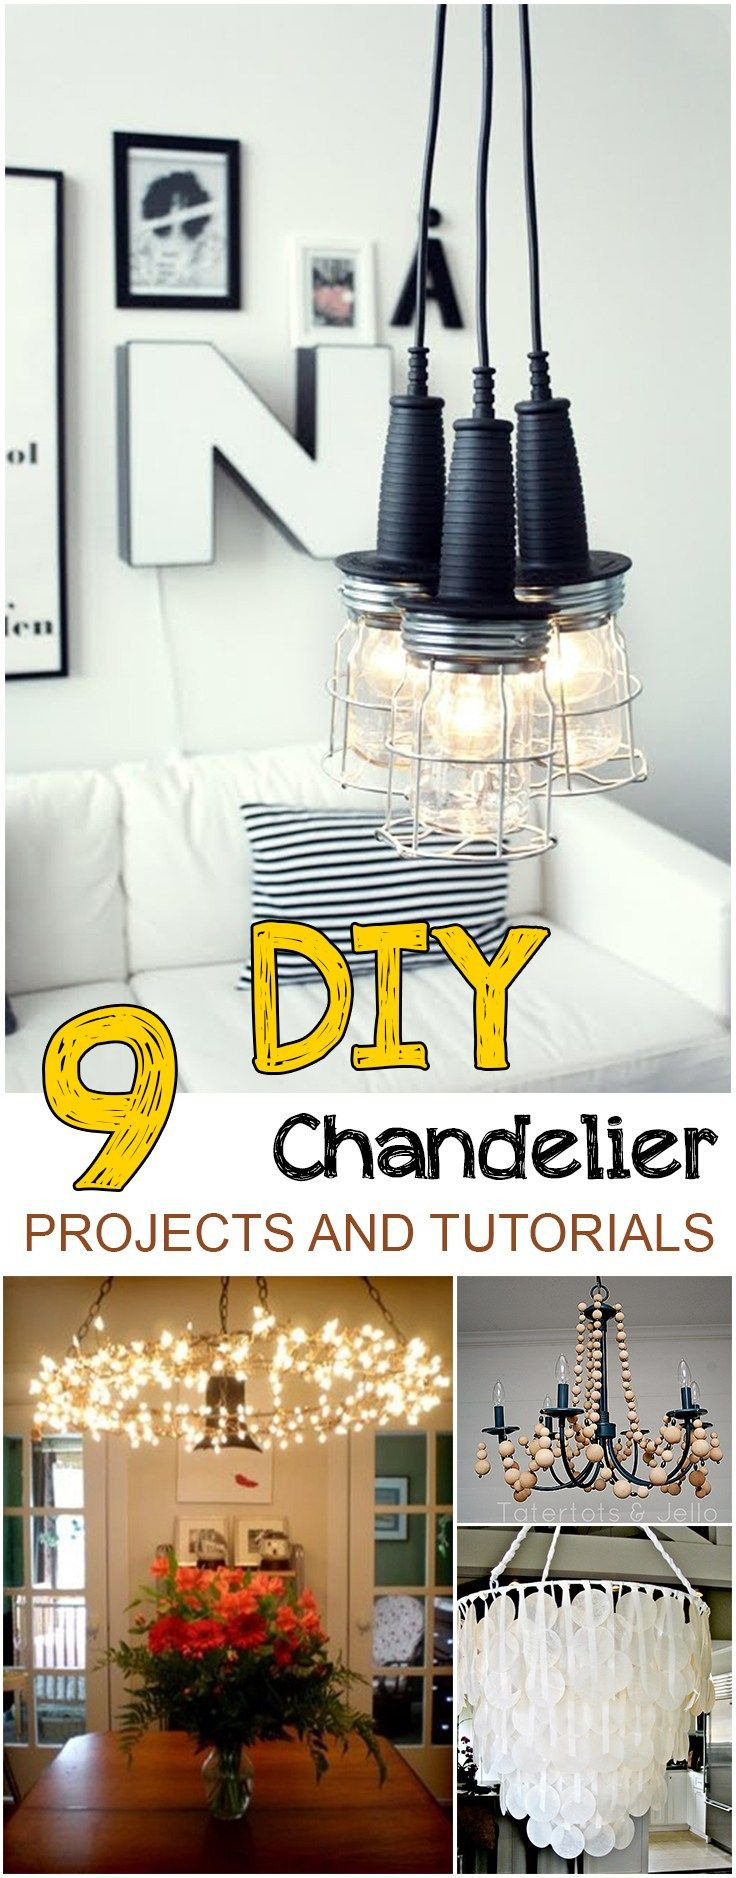 9 DIY Chandelier Projects and Tutorials